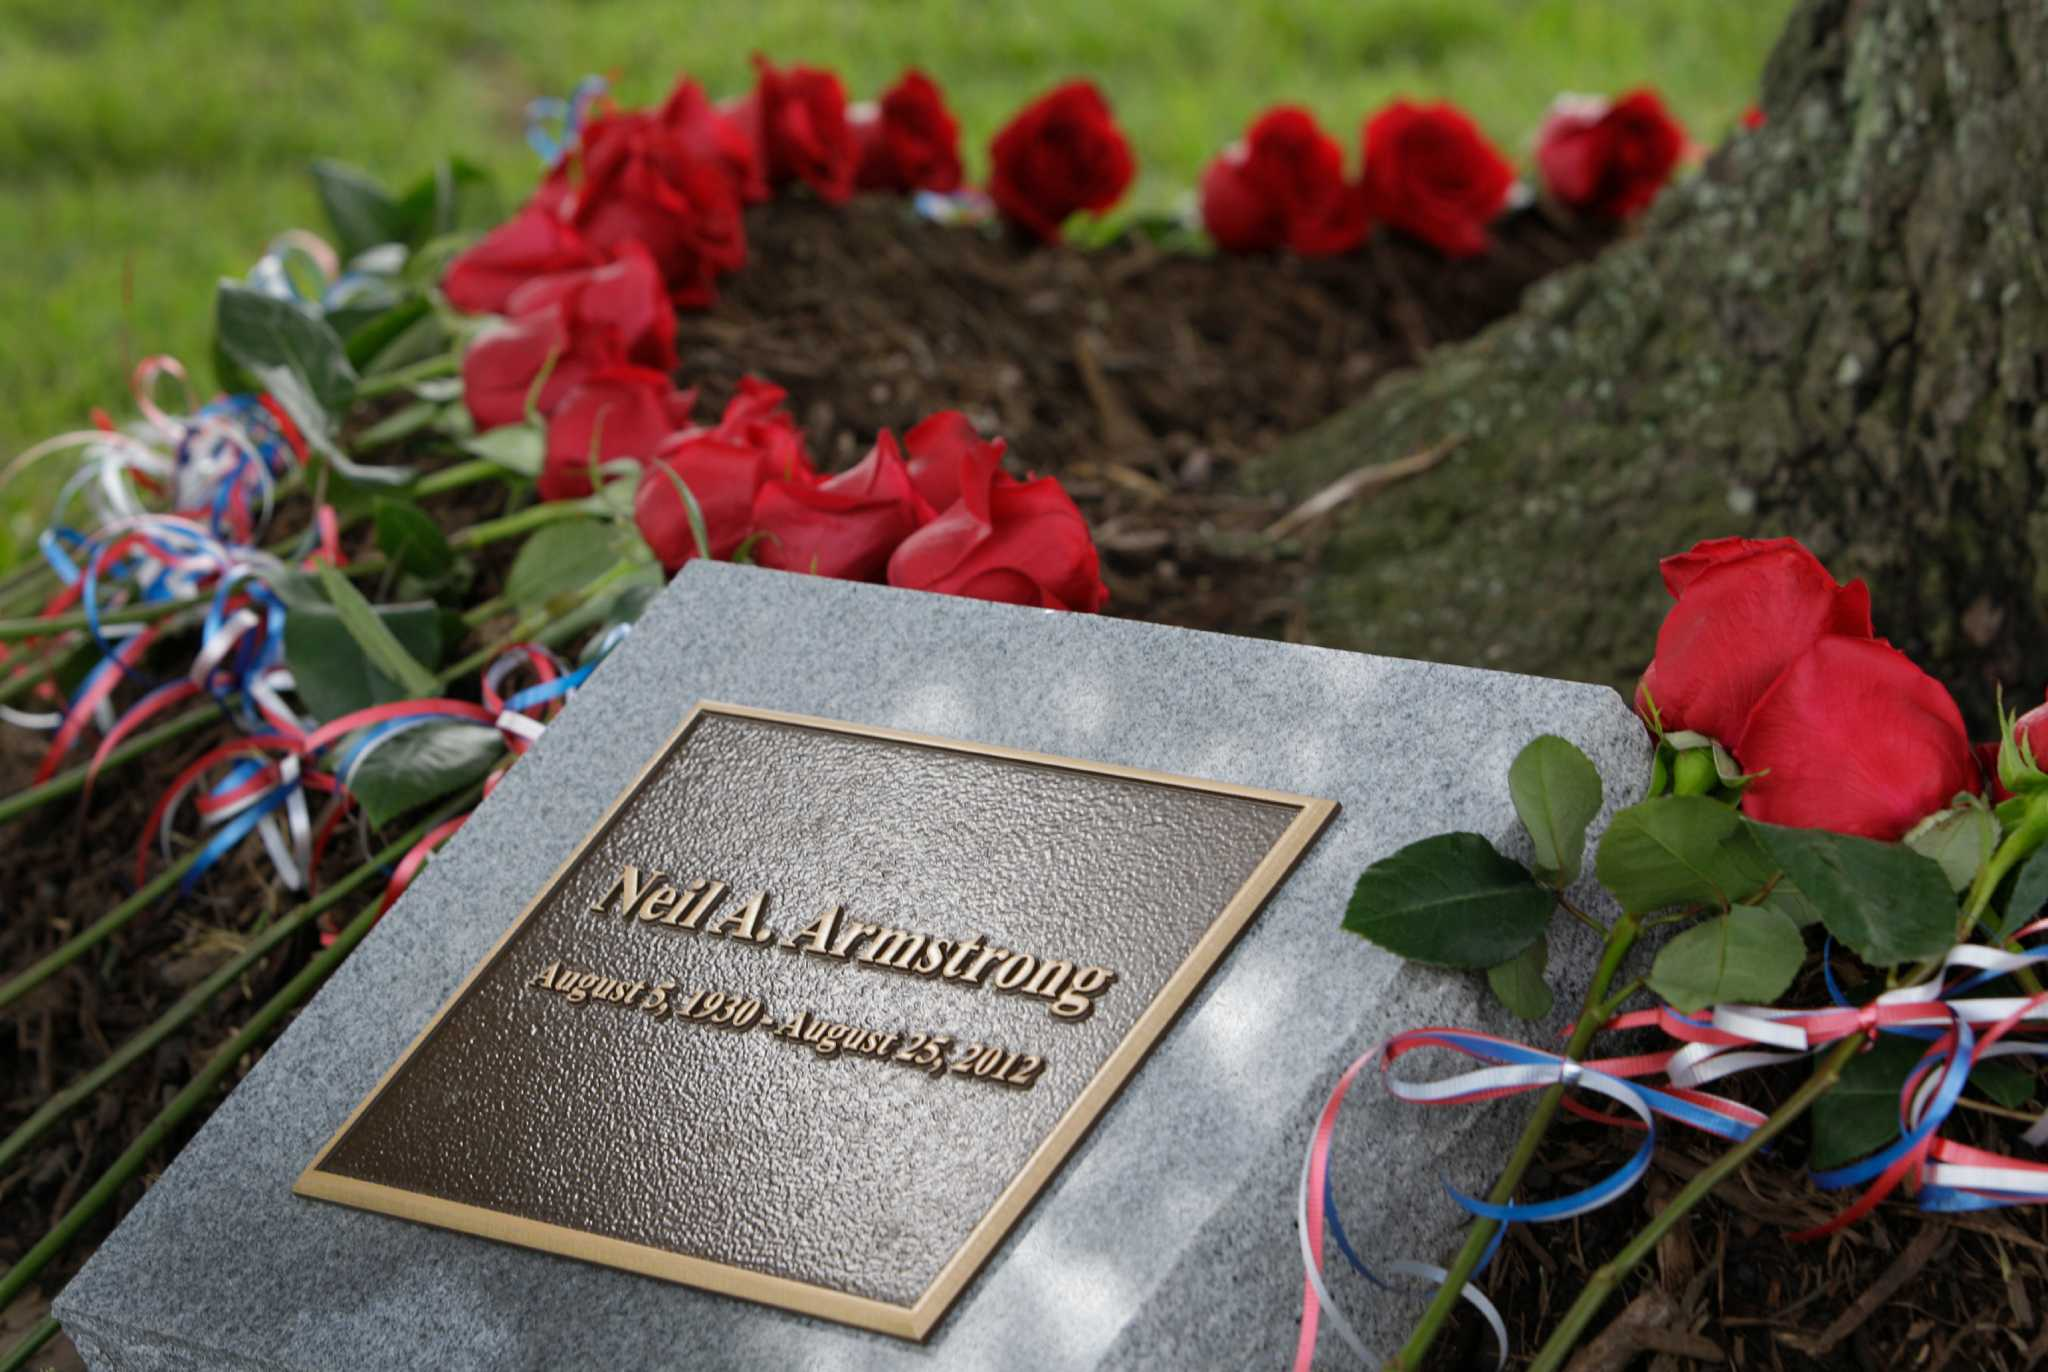 Memorial for Neil Armstrong at JSC - Houston Chronicle